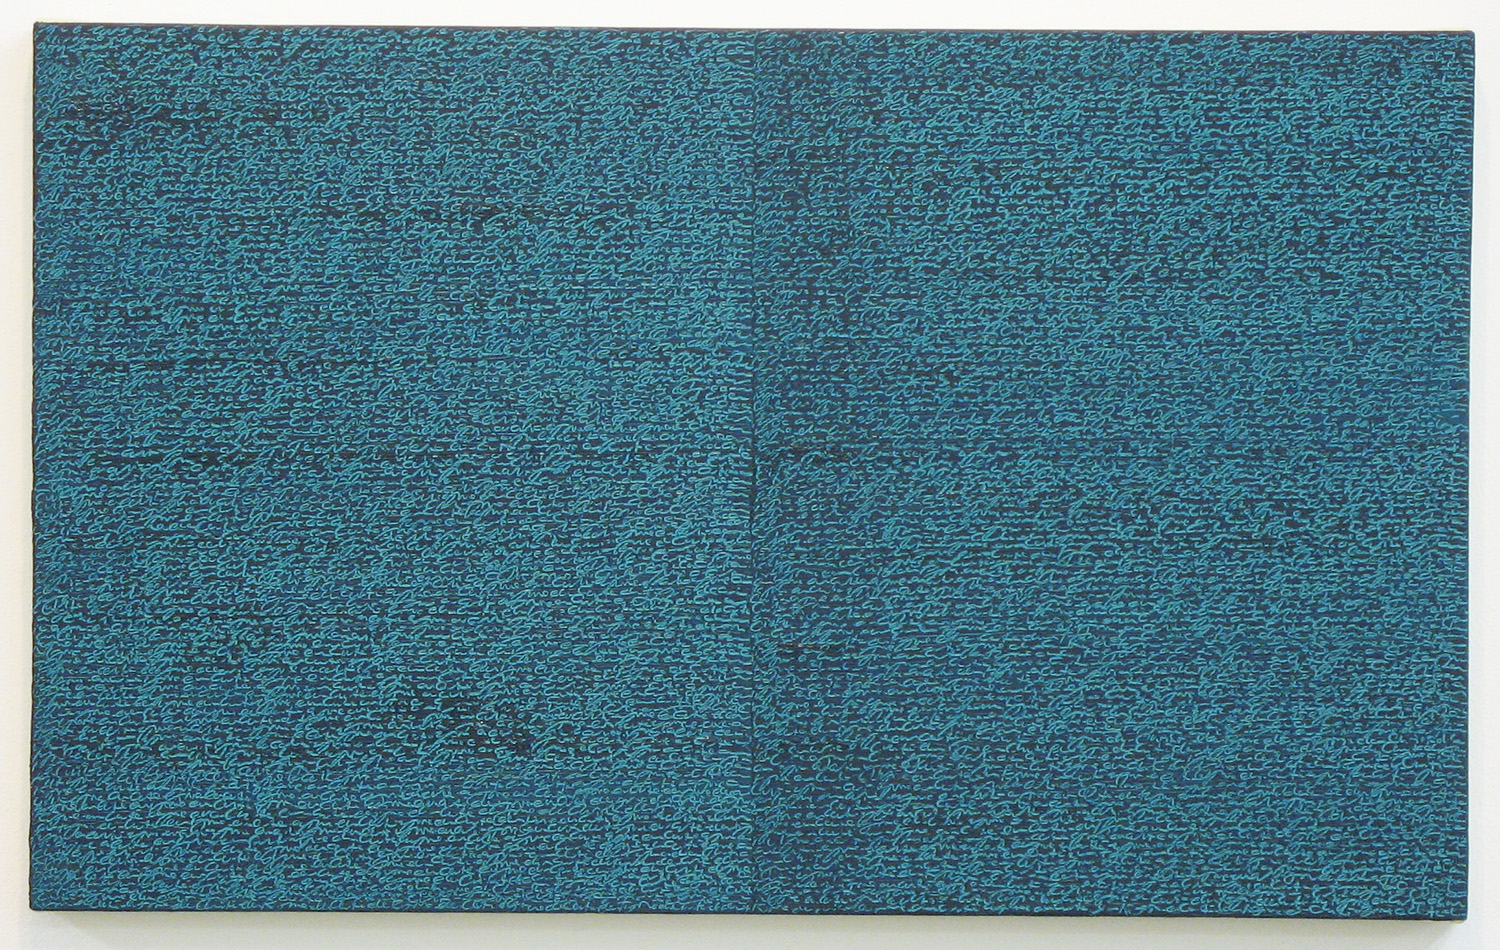 Open Book -green-green-<br>oil and amber on canvas over panel, 37 x 60 cm, 2008